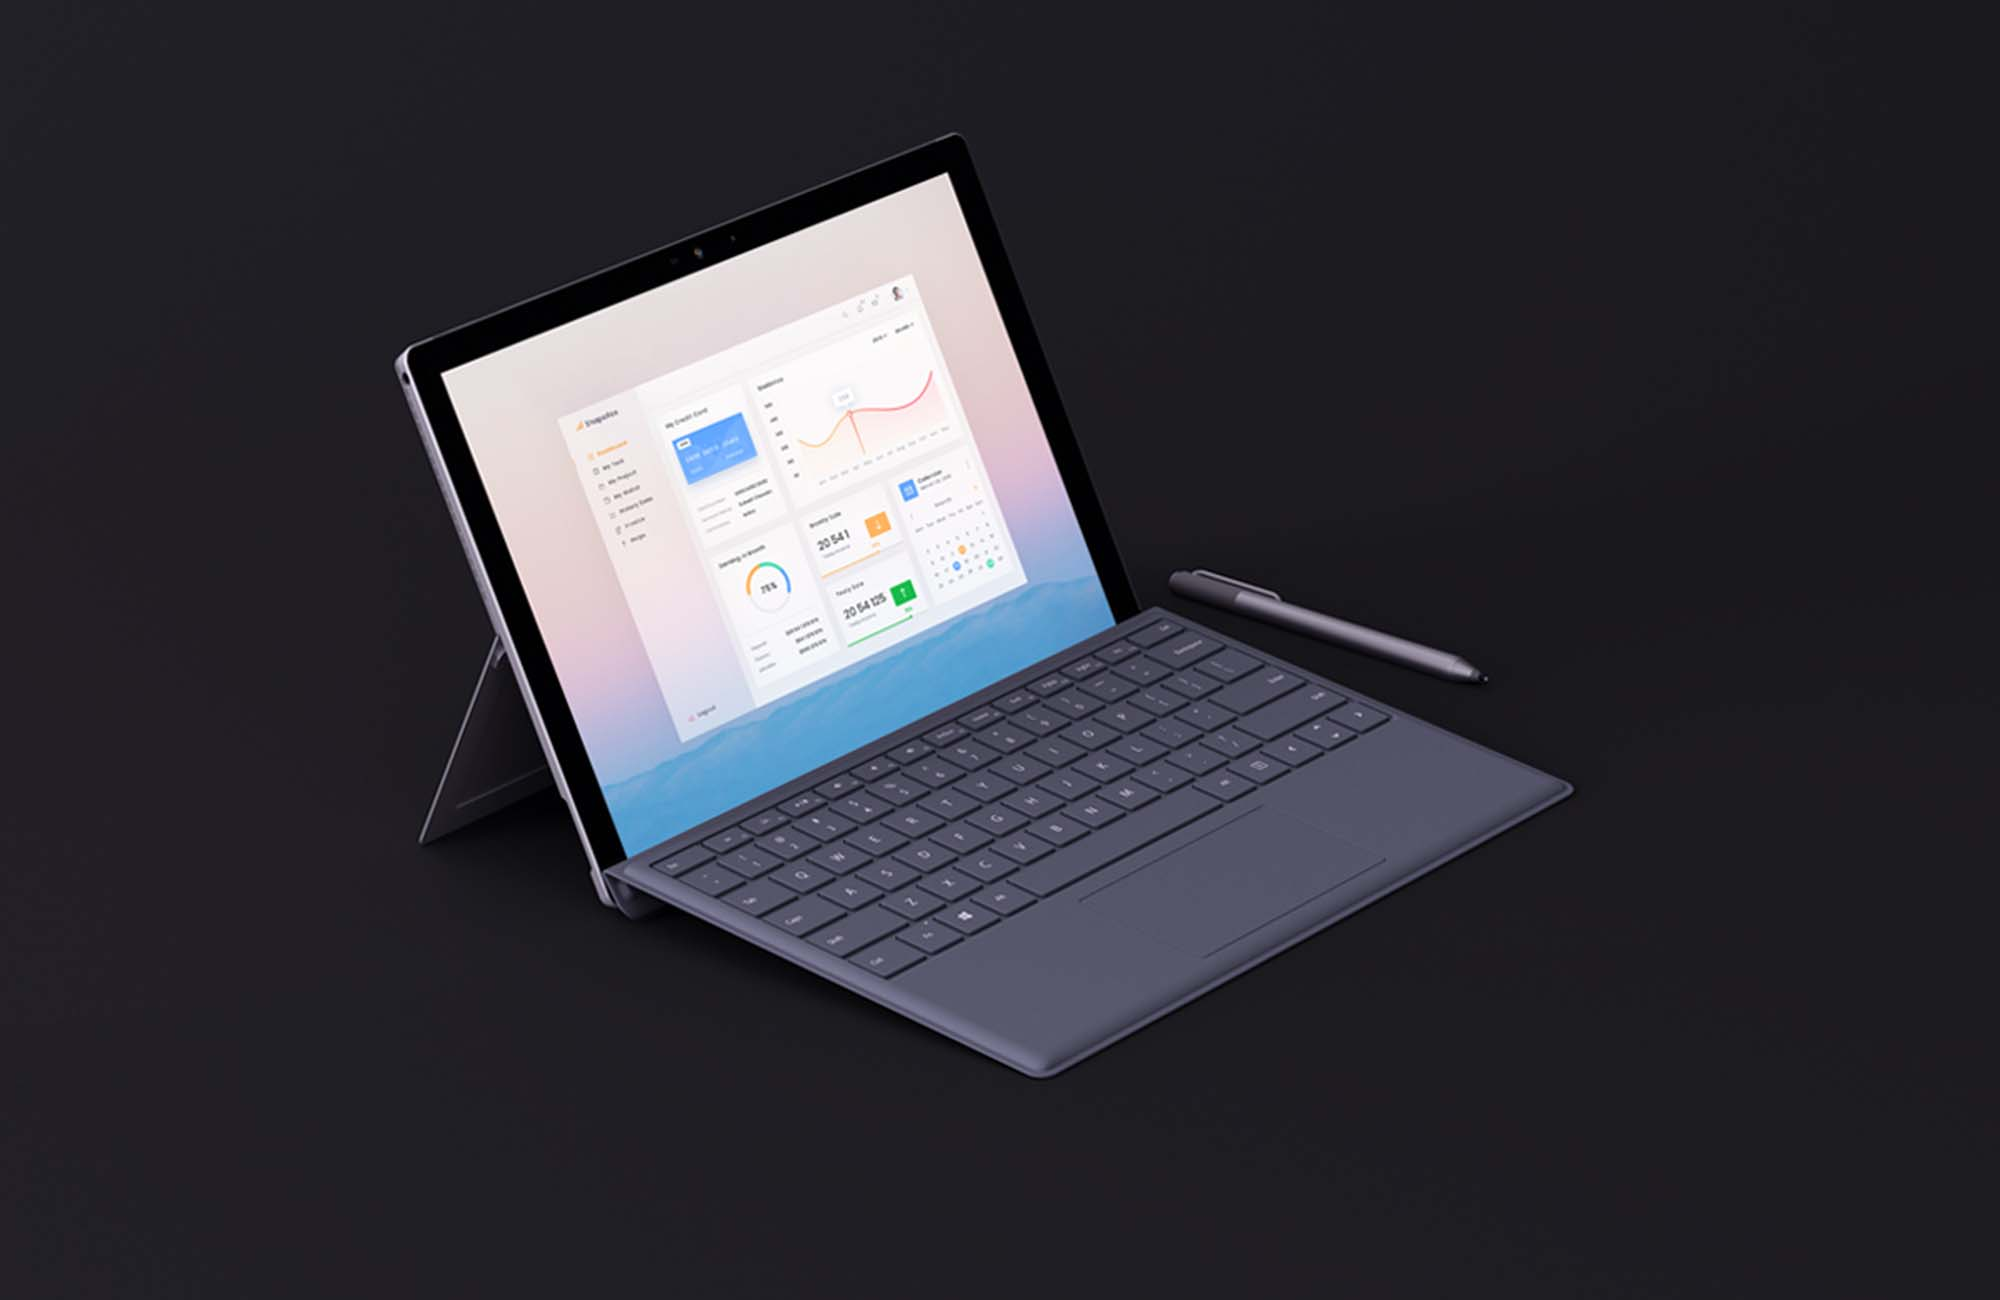 How to get a free surface pro